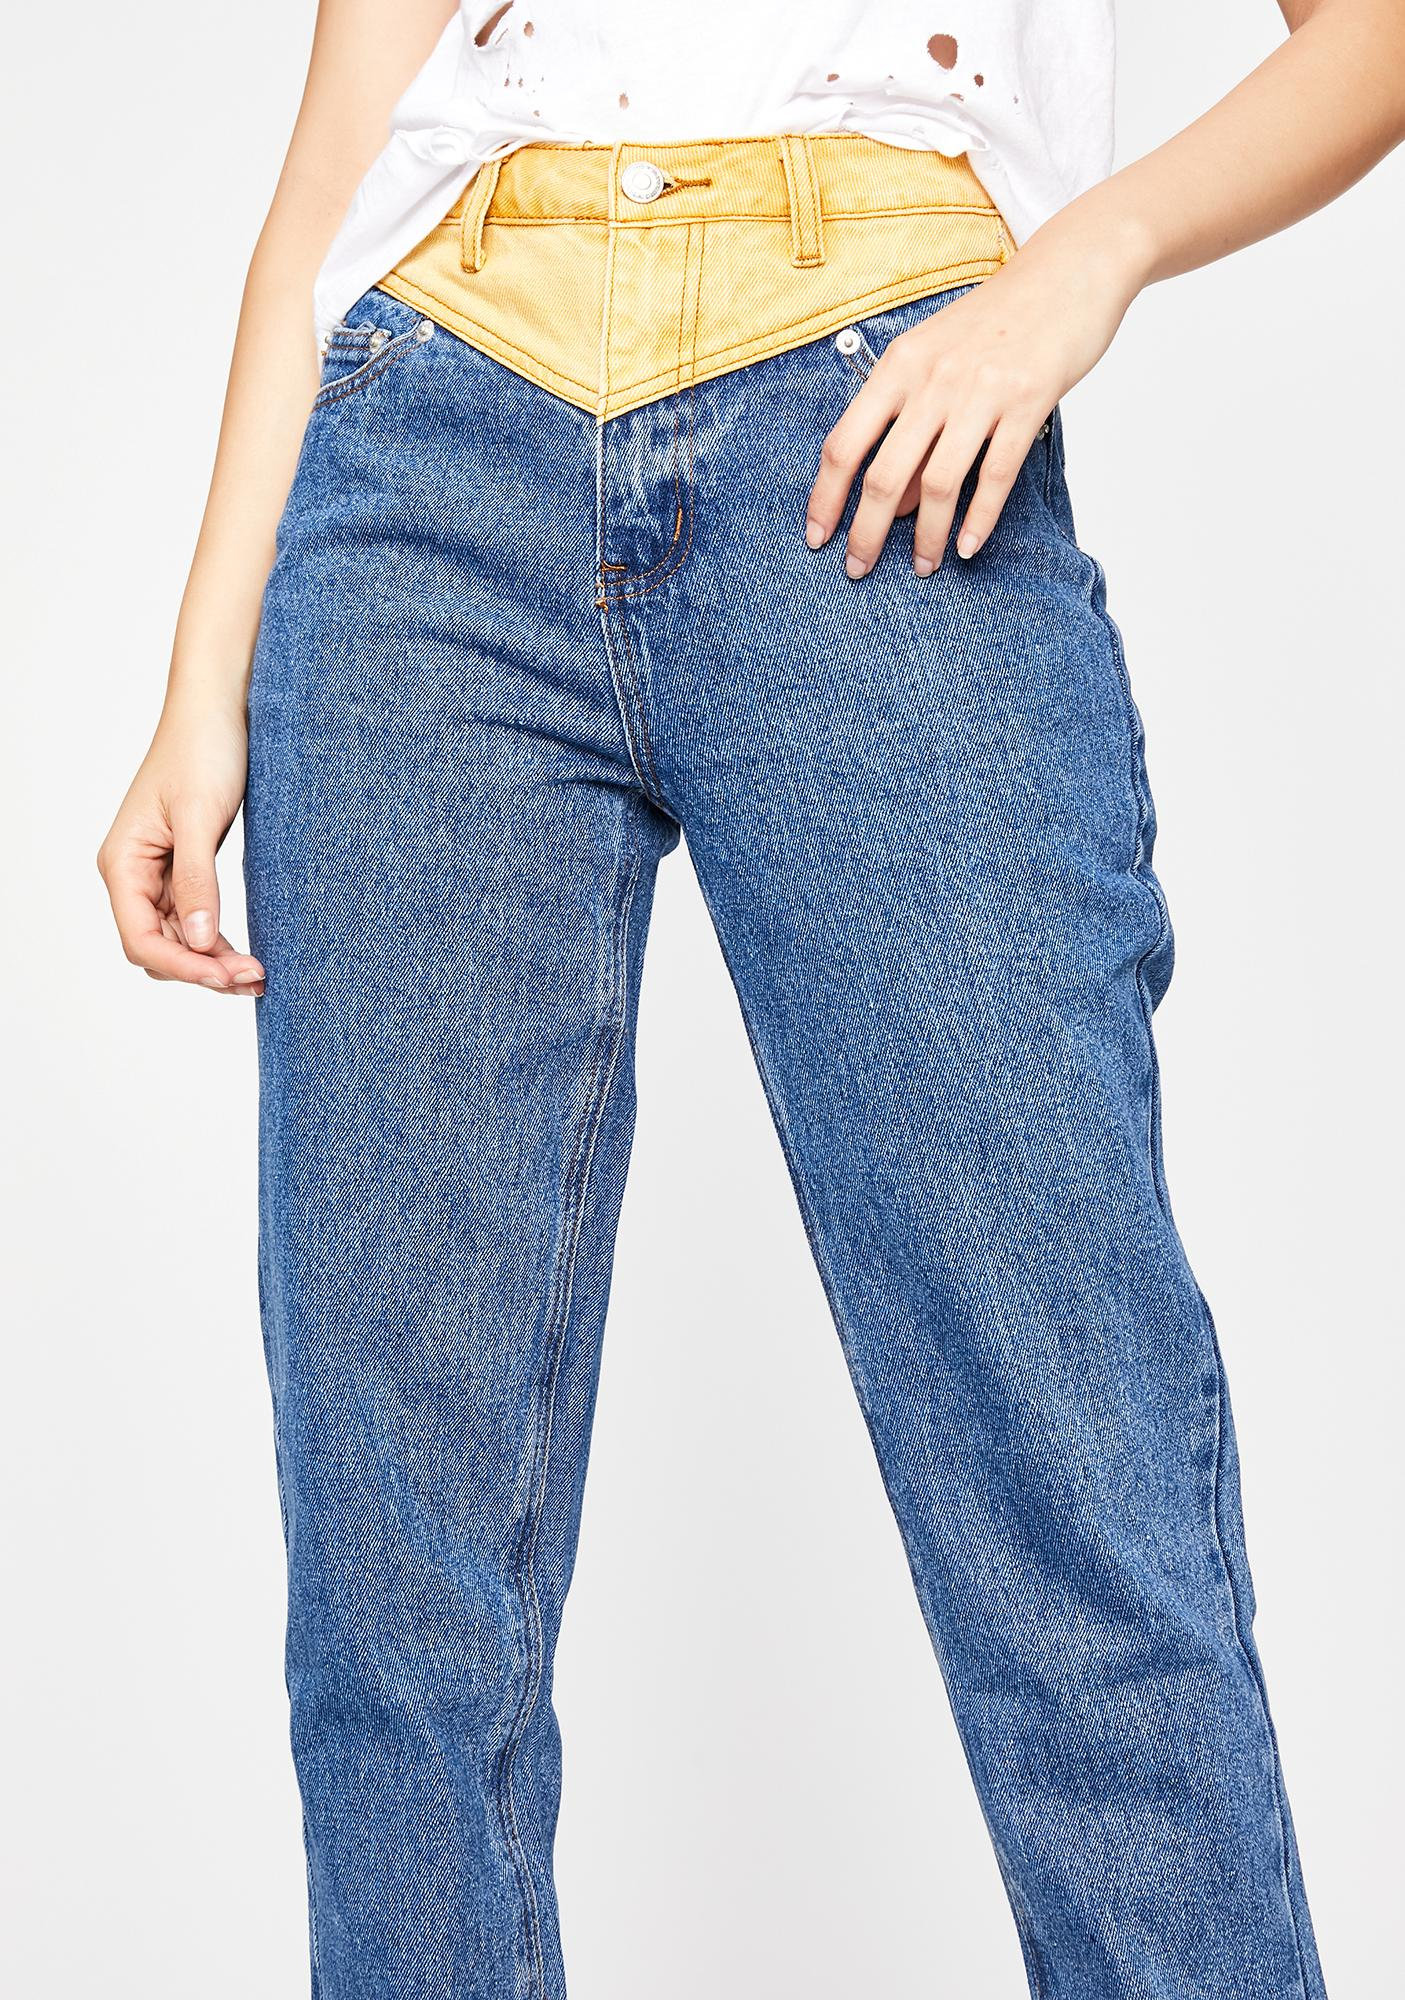 Gimme A Sign Colorblock Jeans